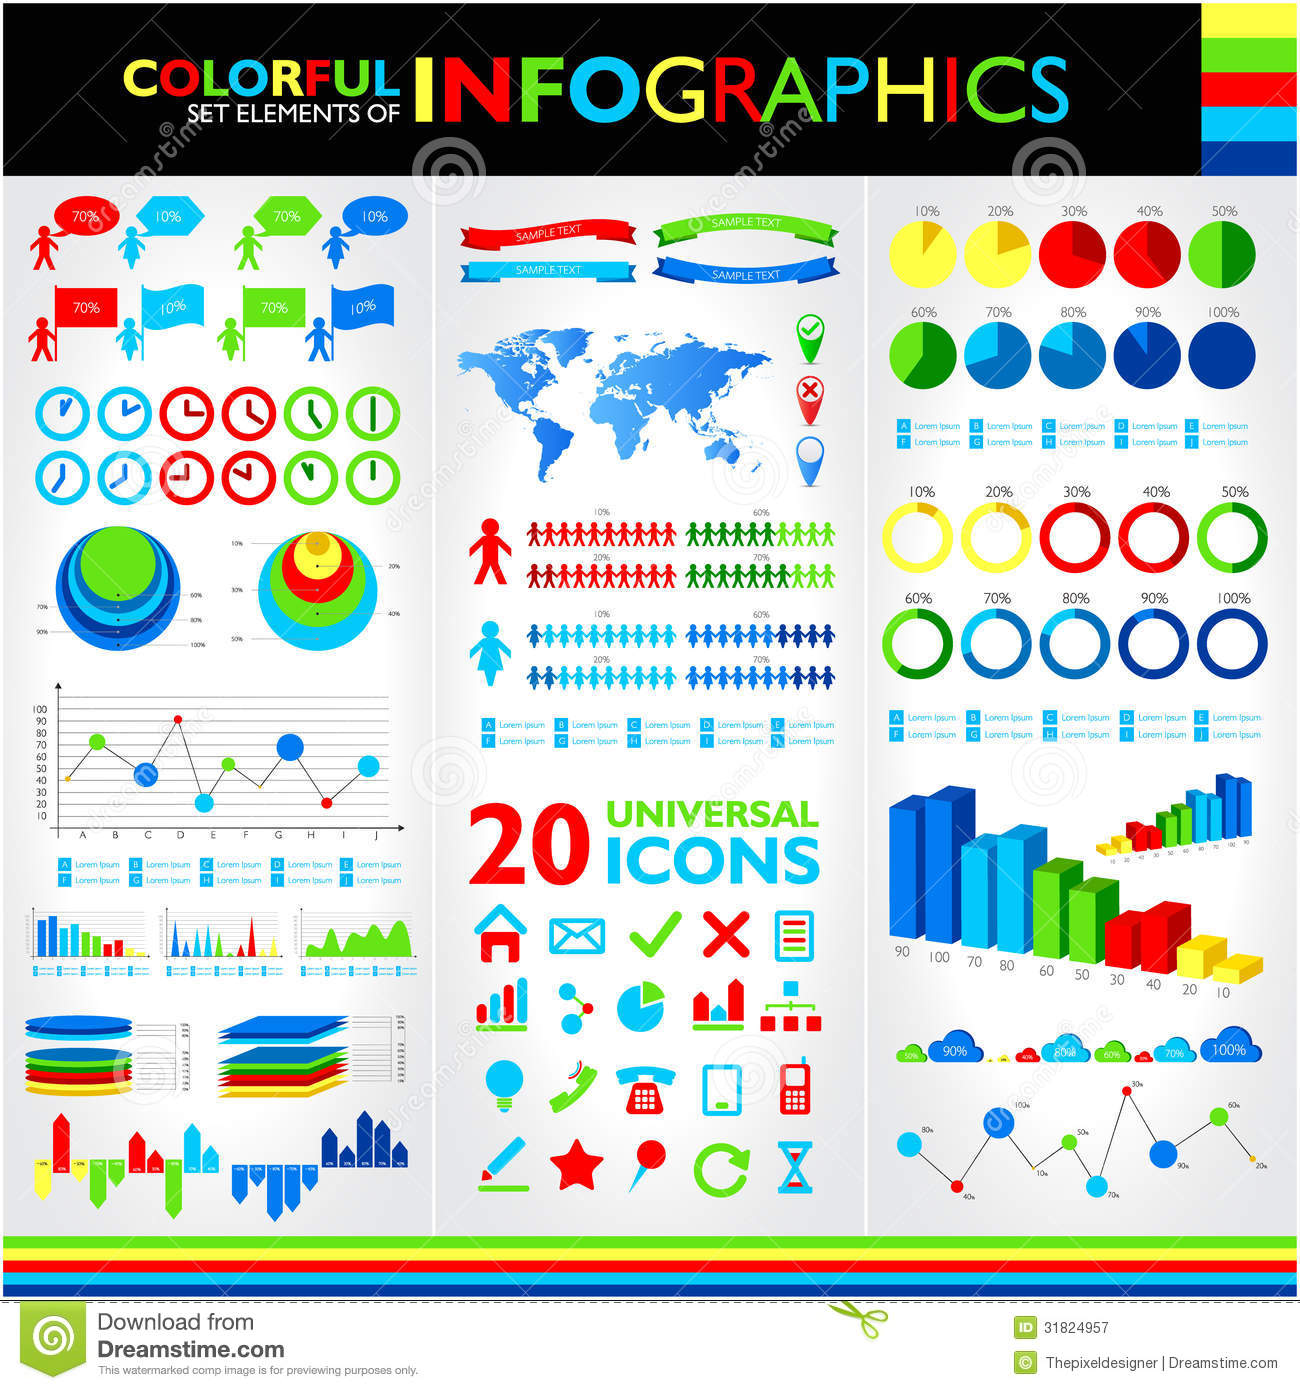 11 Free Infographic People Icons Images - Free Infographic ...